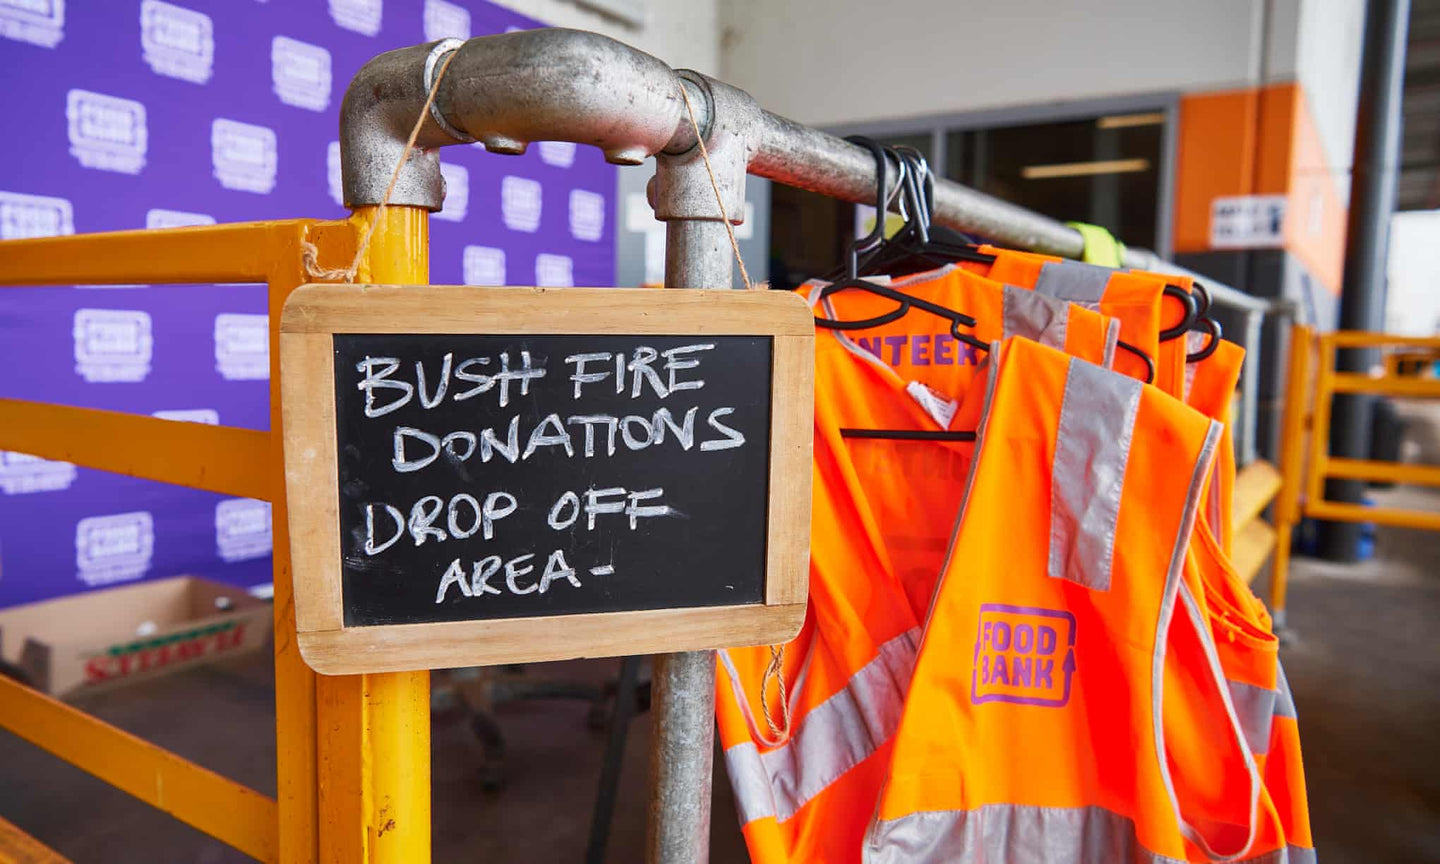 DONATE TO THE BUSH FIRE CRISIS on your next order